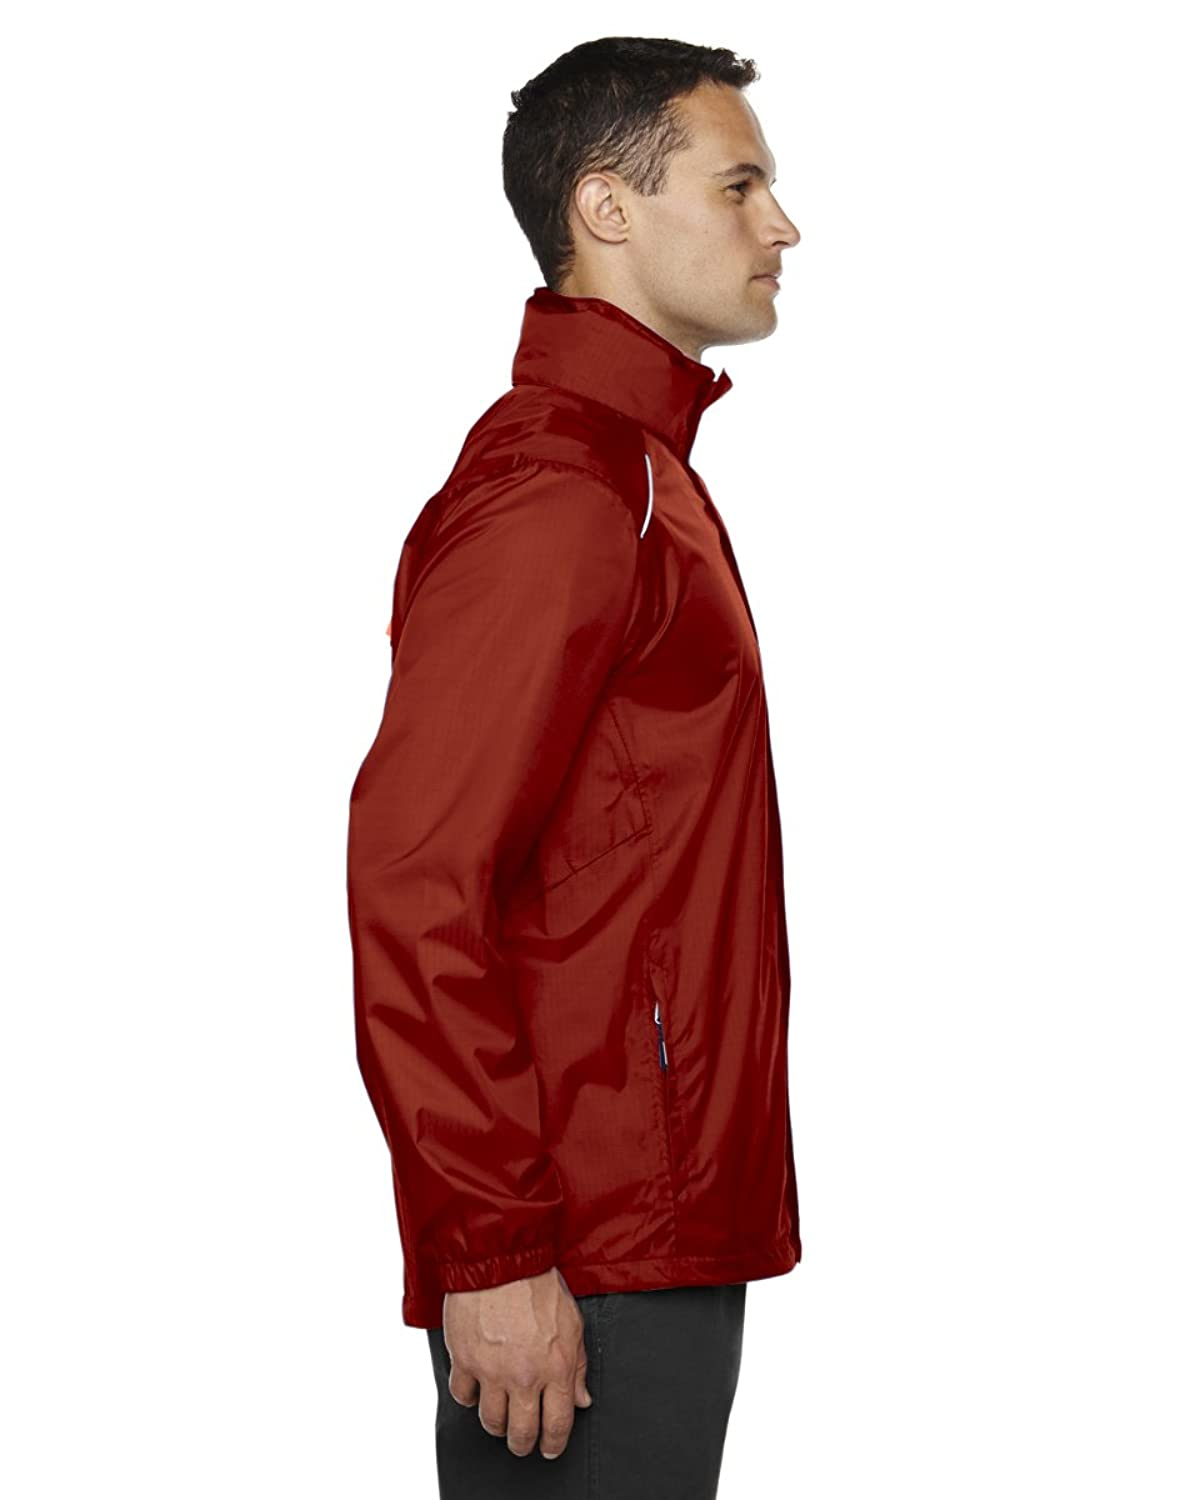 Core 365 mens Climate Seam-Sealed Variegated Ripstop Jacket - 88185